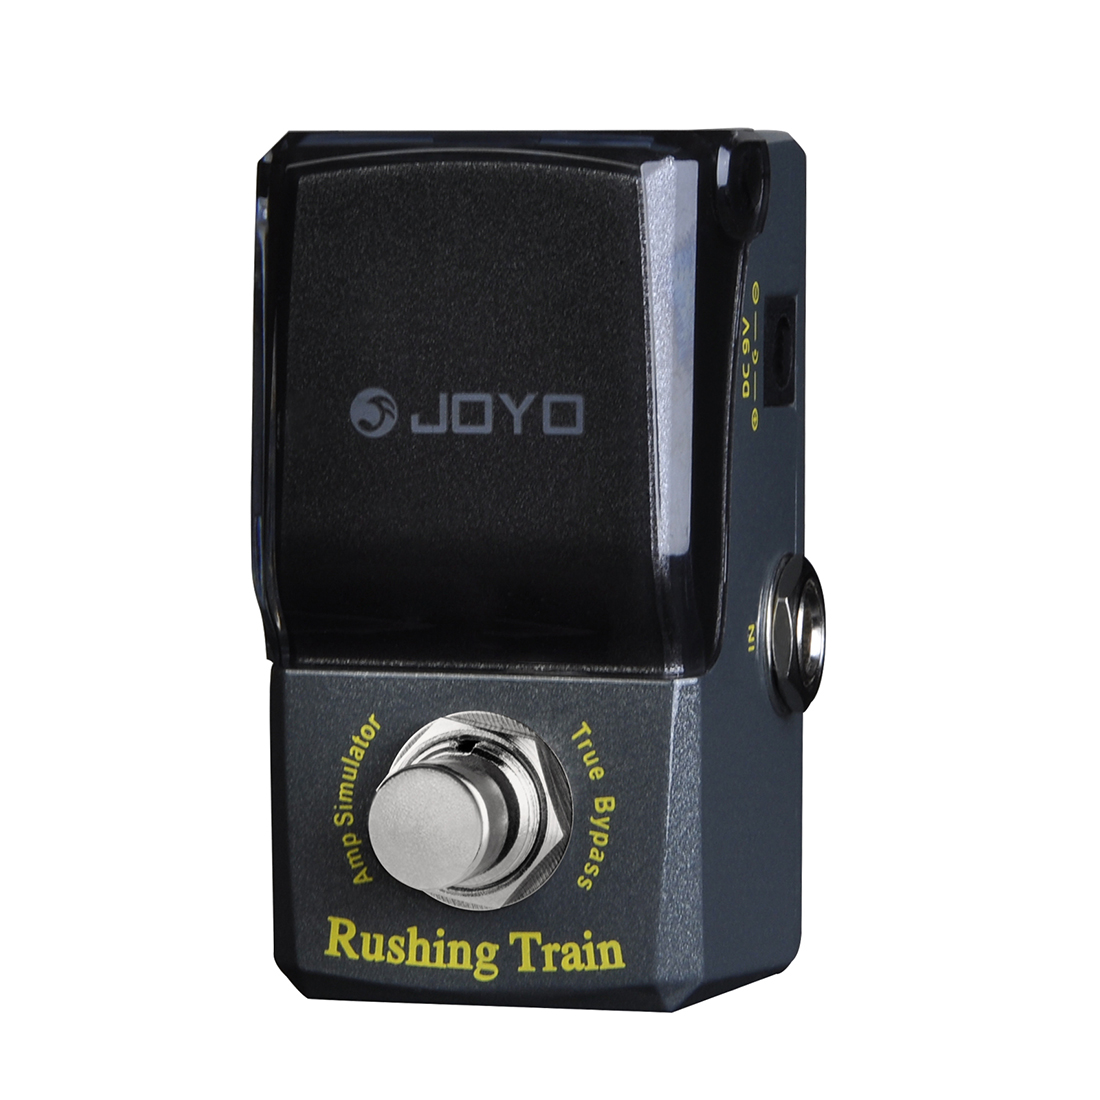 JOYO JF-306 Rushing Train VOX Cabinet Simulation Effects Pedal Effect Processor True Bypass for Guitar Wooden Sound Boogie joyo guitar effects pedals jf 32 hot plexi true bypass design wholesale cheap free shipping